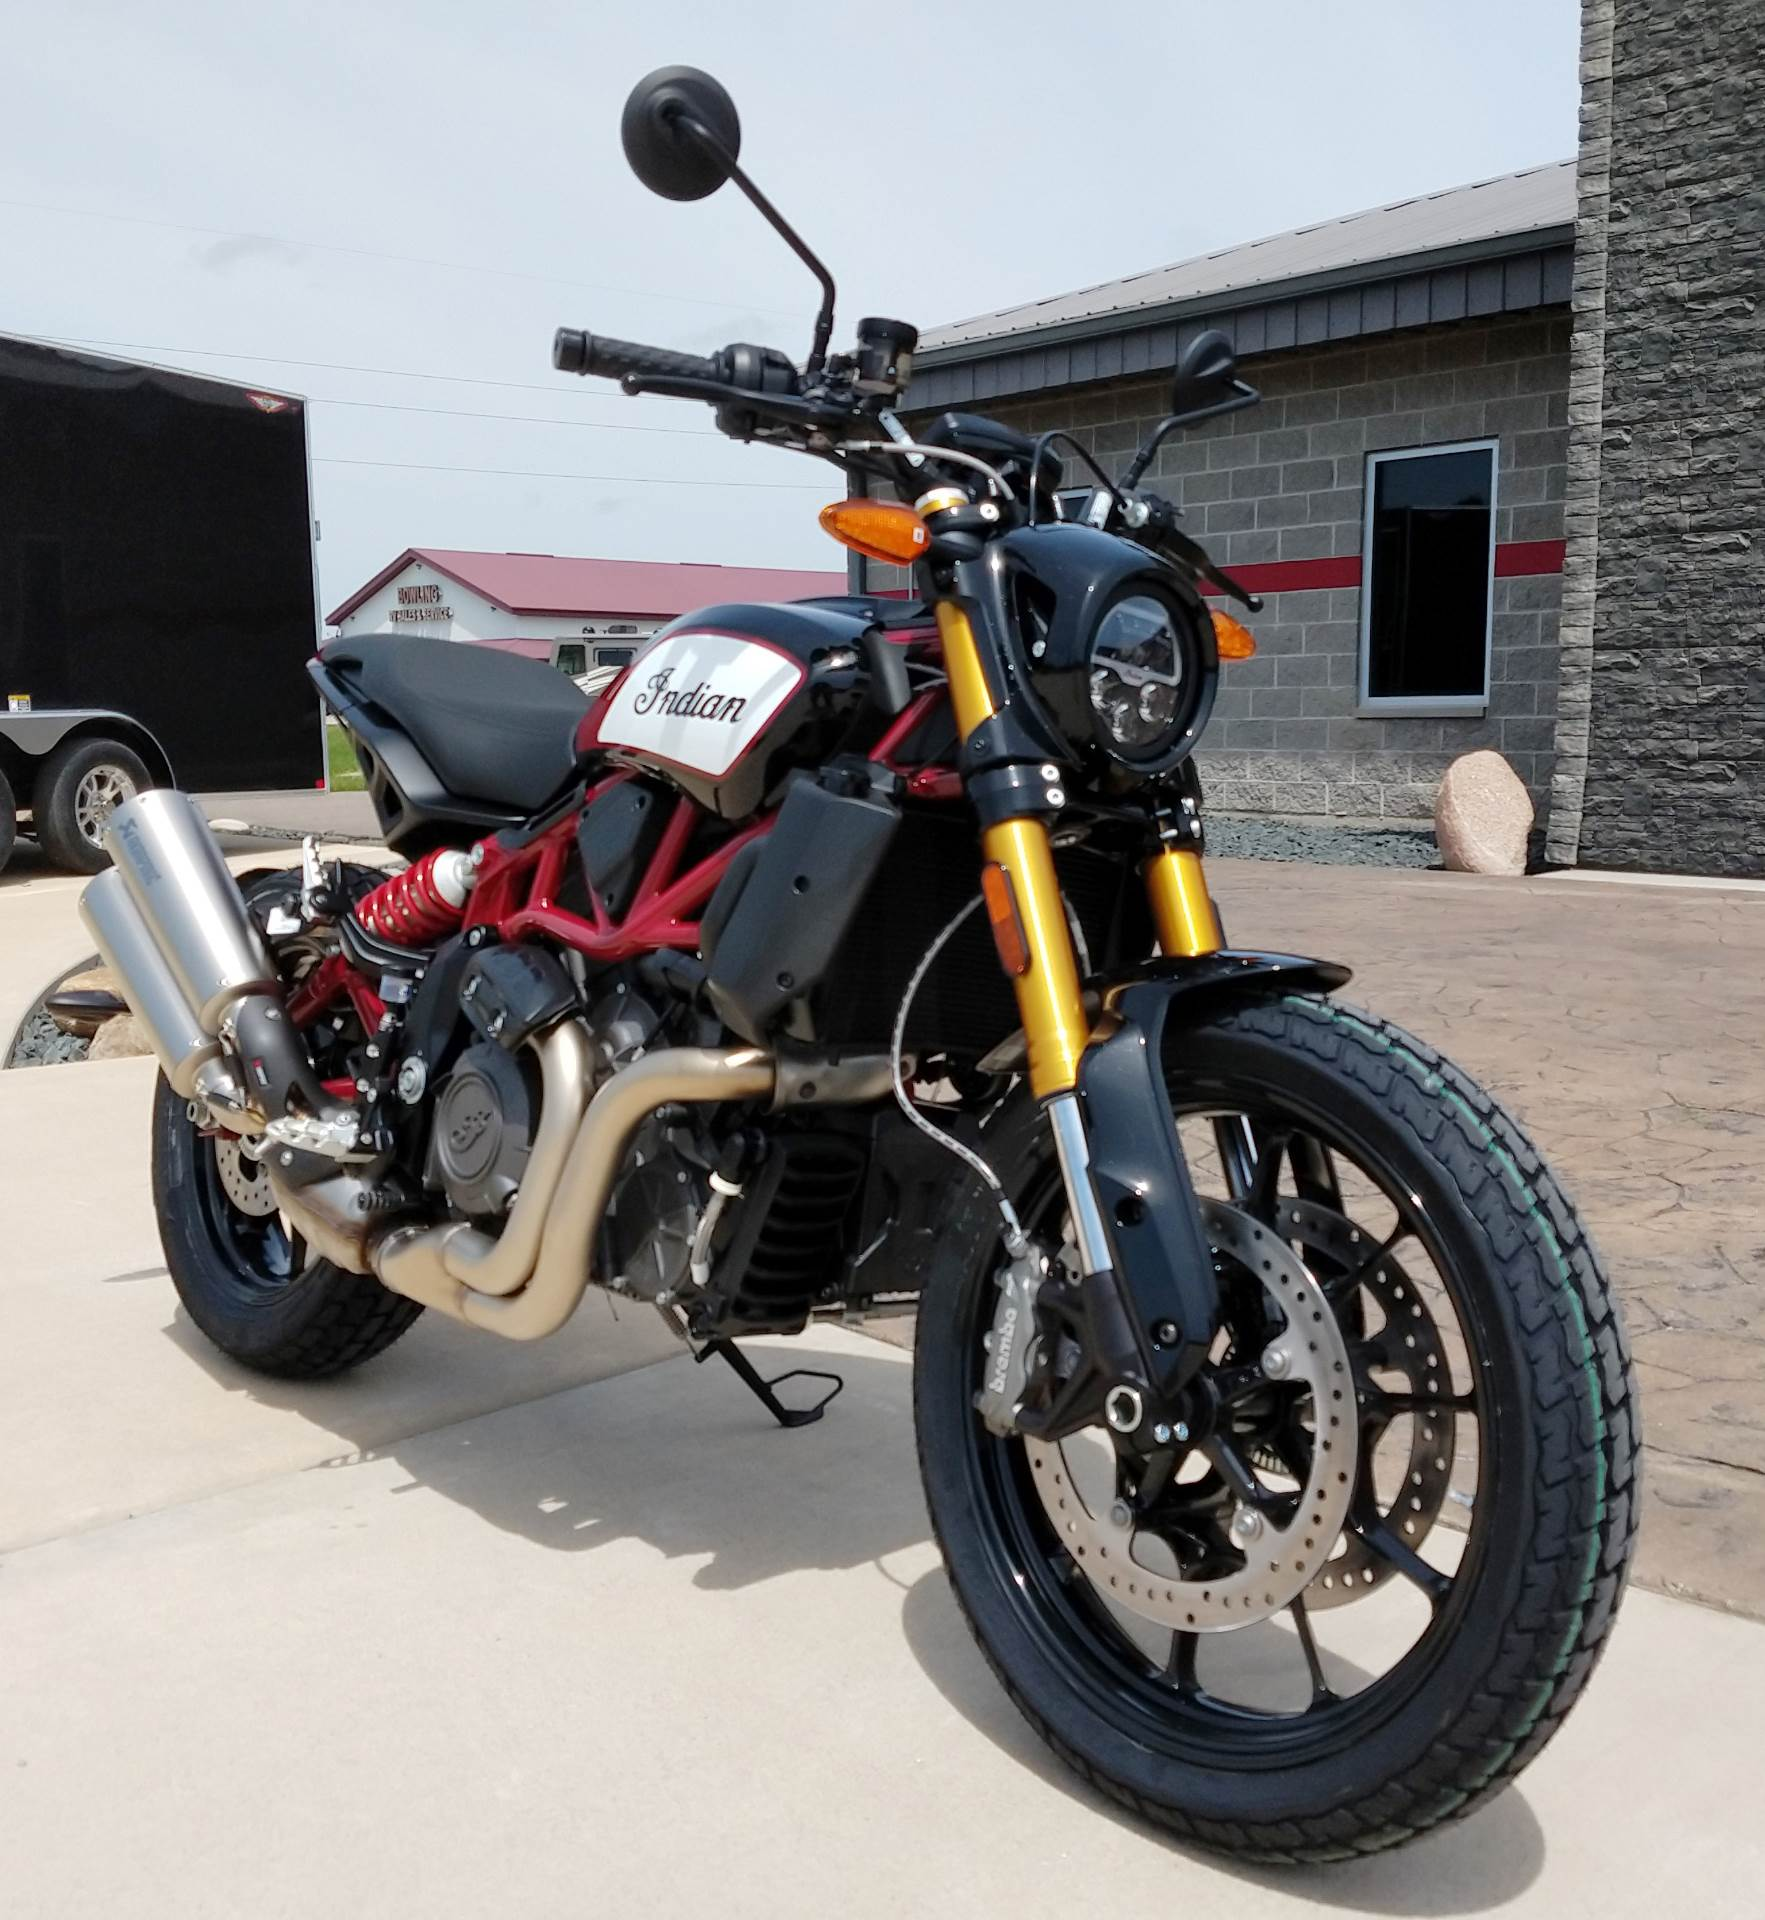 2019 Indian FTR™ 1200 S in Ottumwa, Iowa - Photo 1